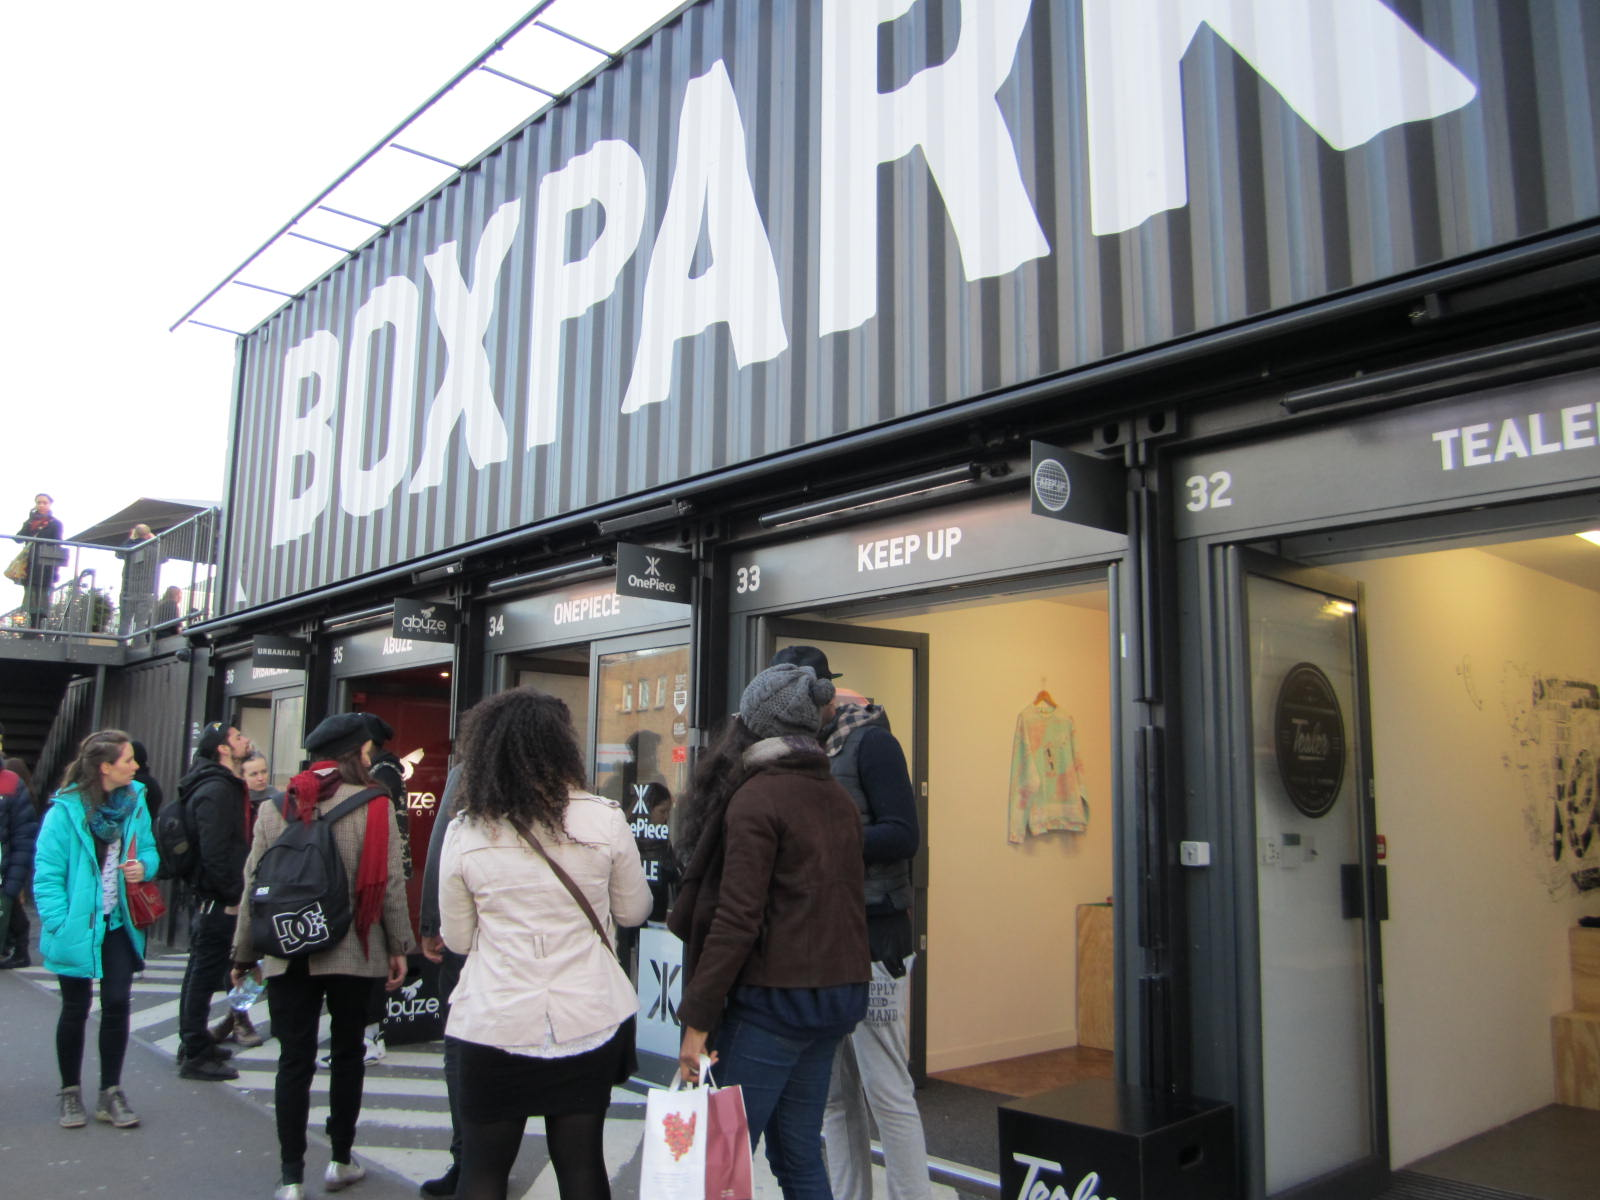 BoxPark Pop-up Shopping Mall